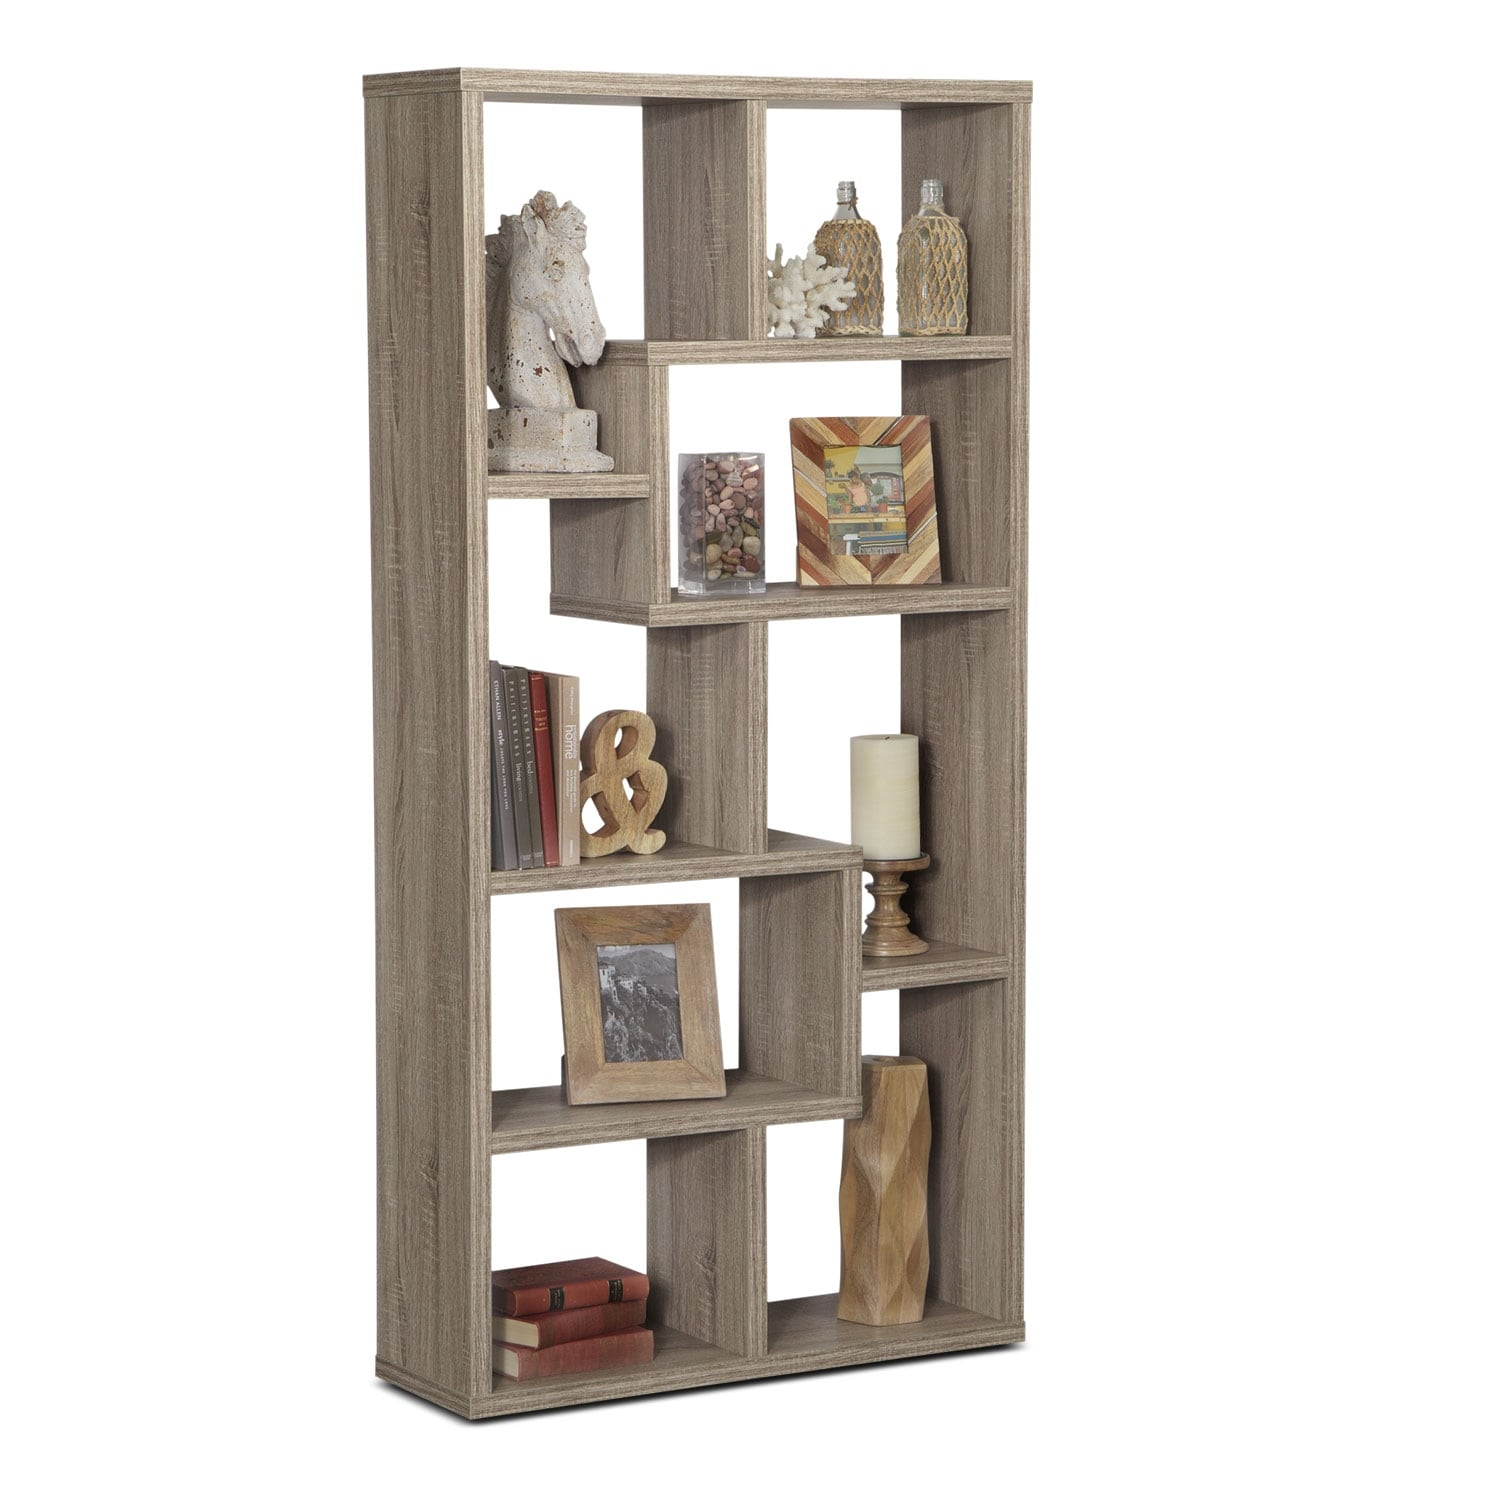 Obsidian Bookcase - Taupe